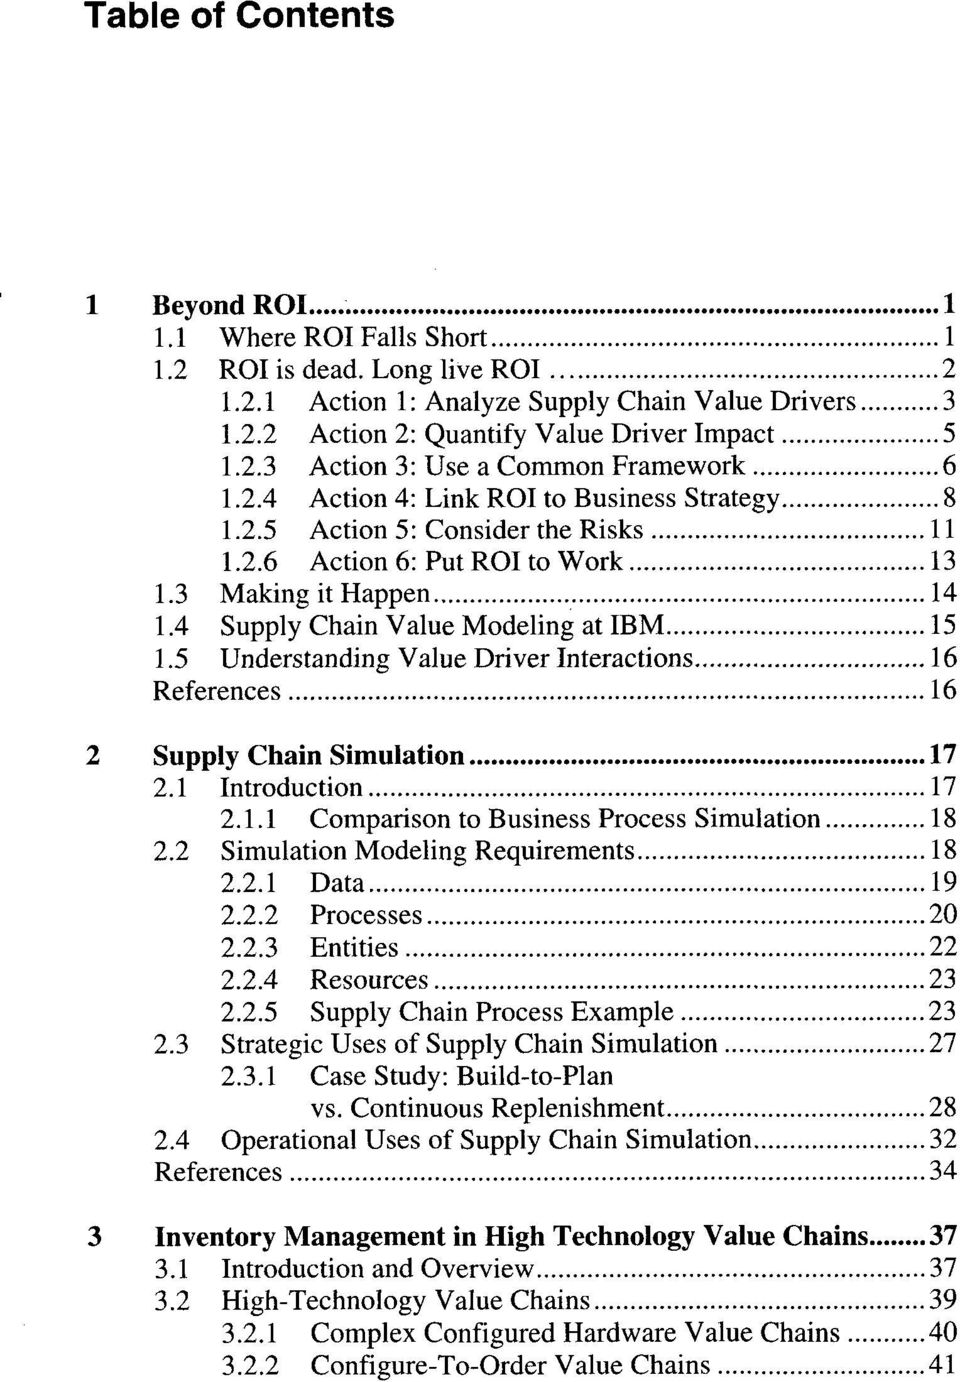 5 Understanding Value Driver Interactions 16 References 16 2 Supply Chain Simulation 17 2.1 Introduction 17 2.1.1 Comparison to Business Process Simulation 18 2.